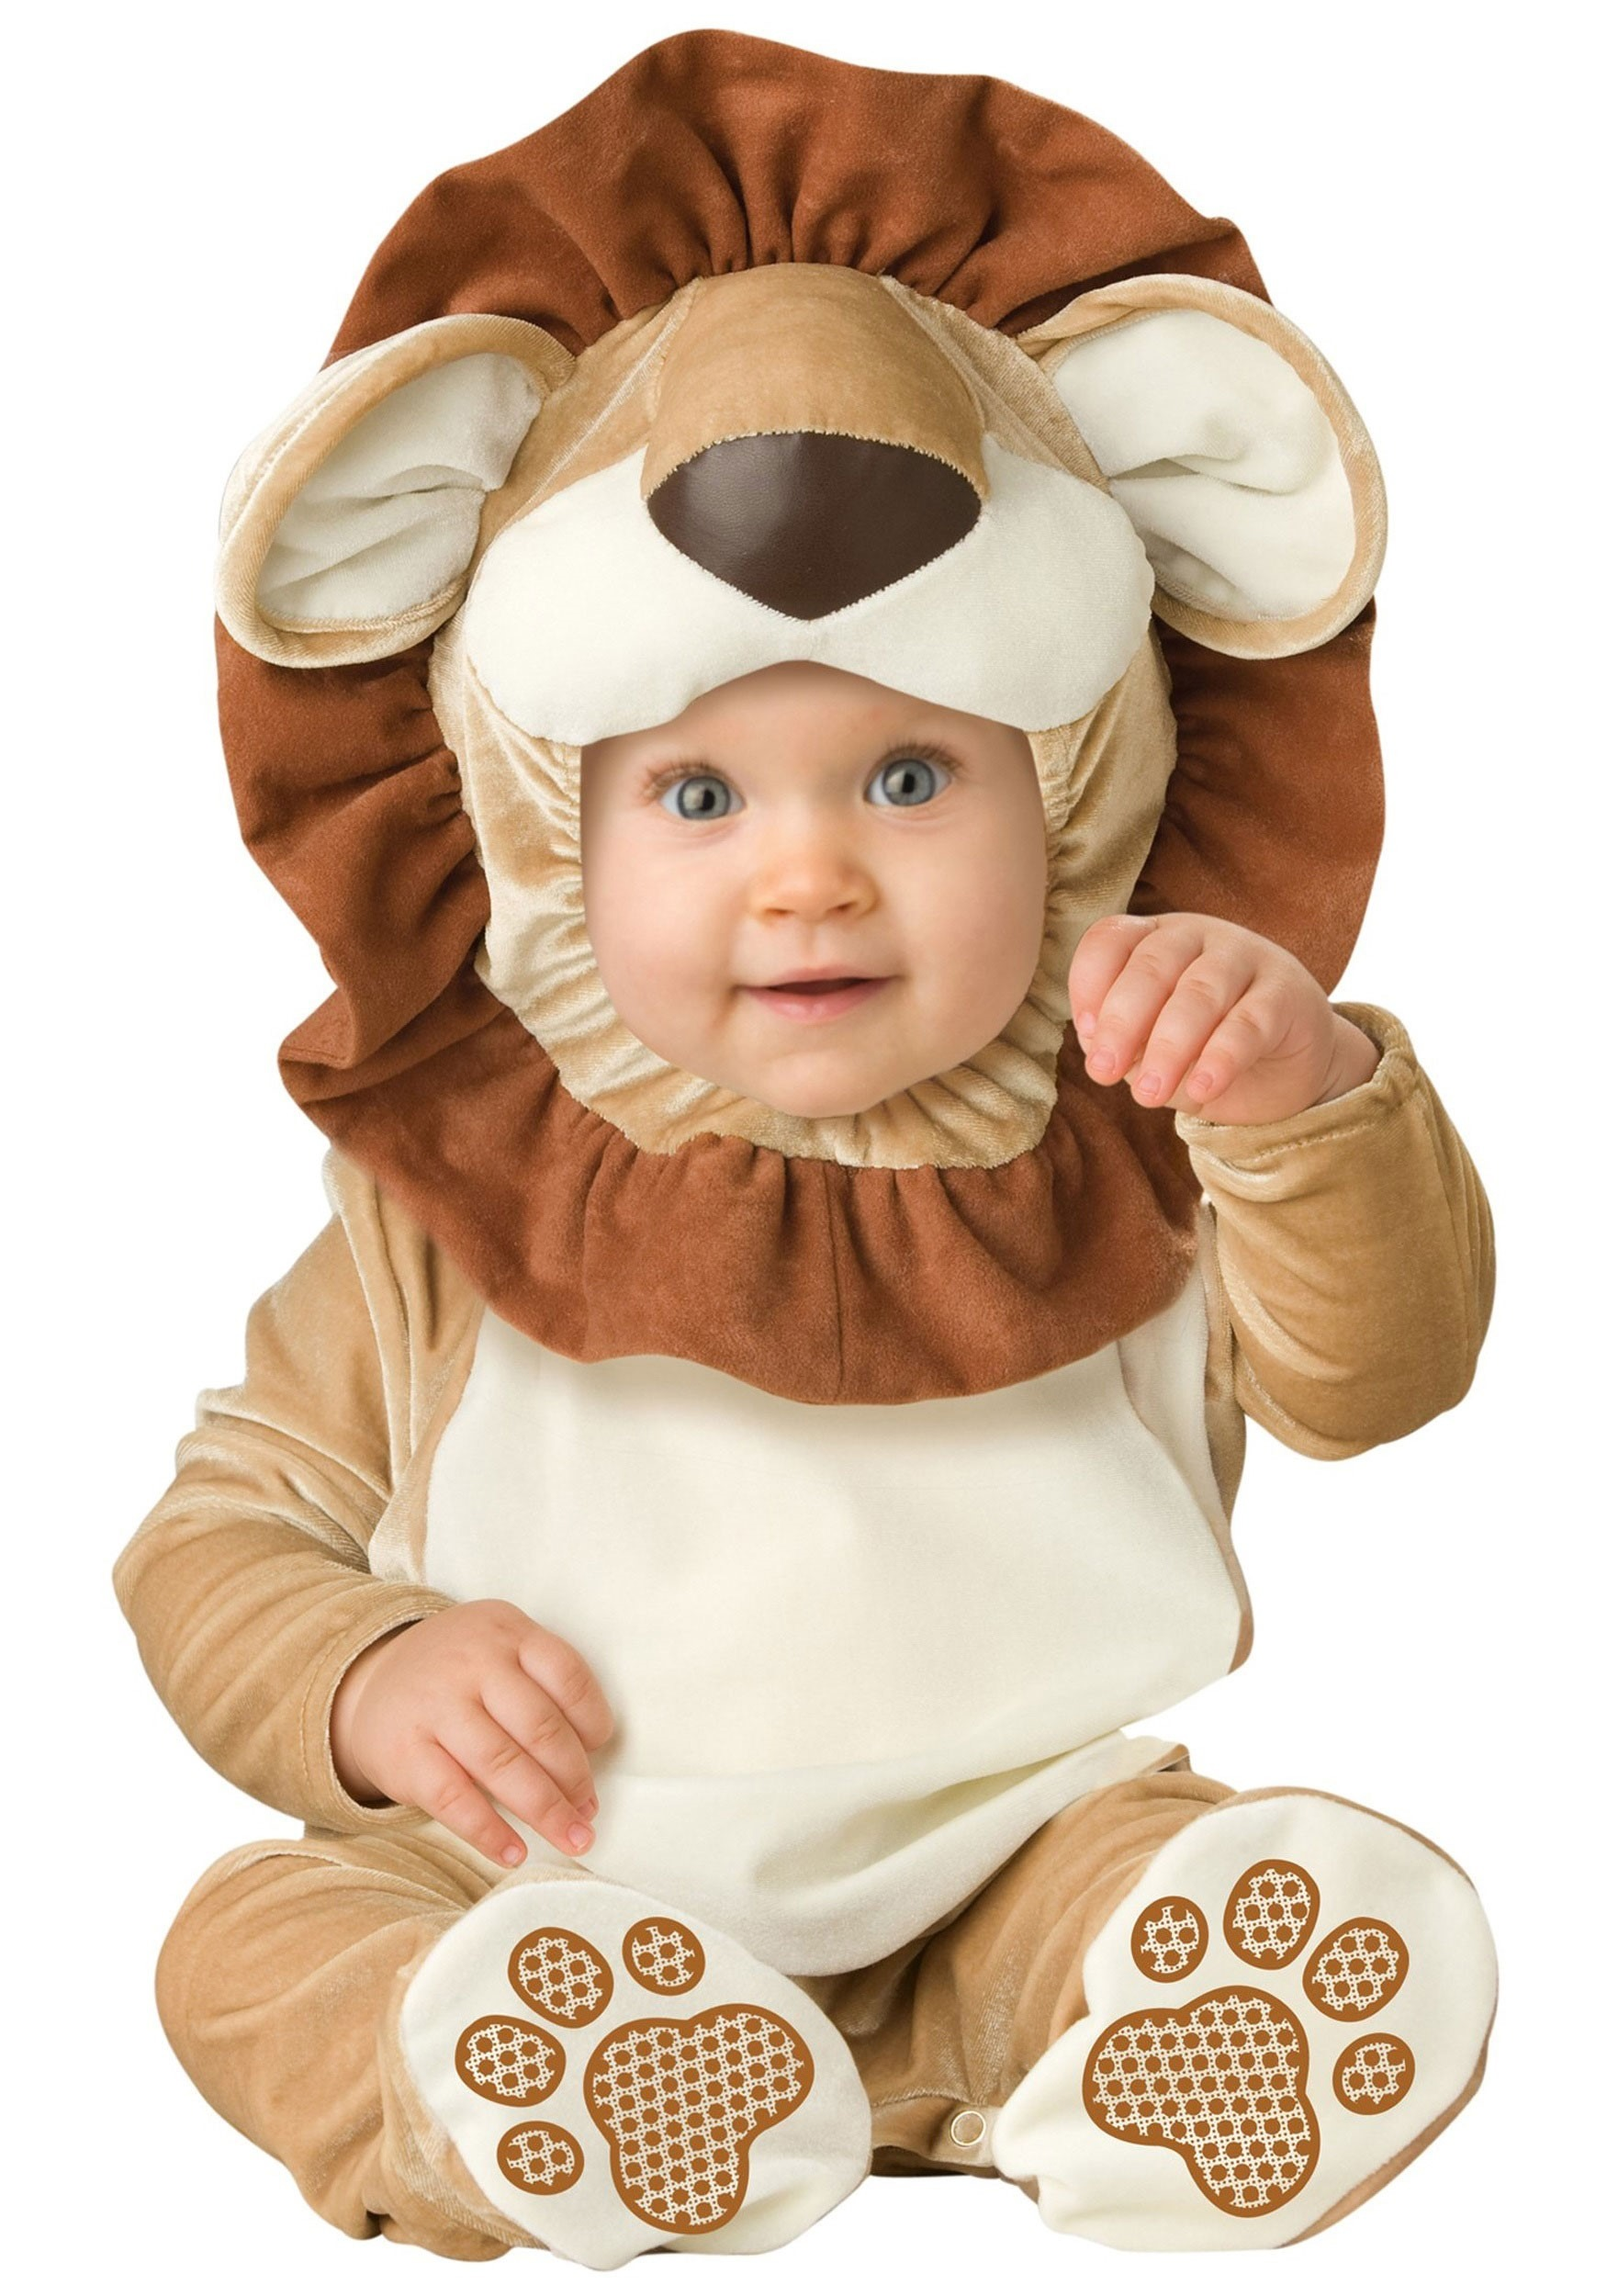 A new baby brings so much joy and happiness, and you can make fun memories with our large selection of infant Halloween costumes. Our adorable newborn Halloween costumes will bring cheer and smiles as you dress up your baby in a cute costume or festive bunting.